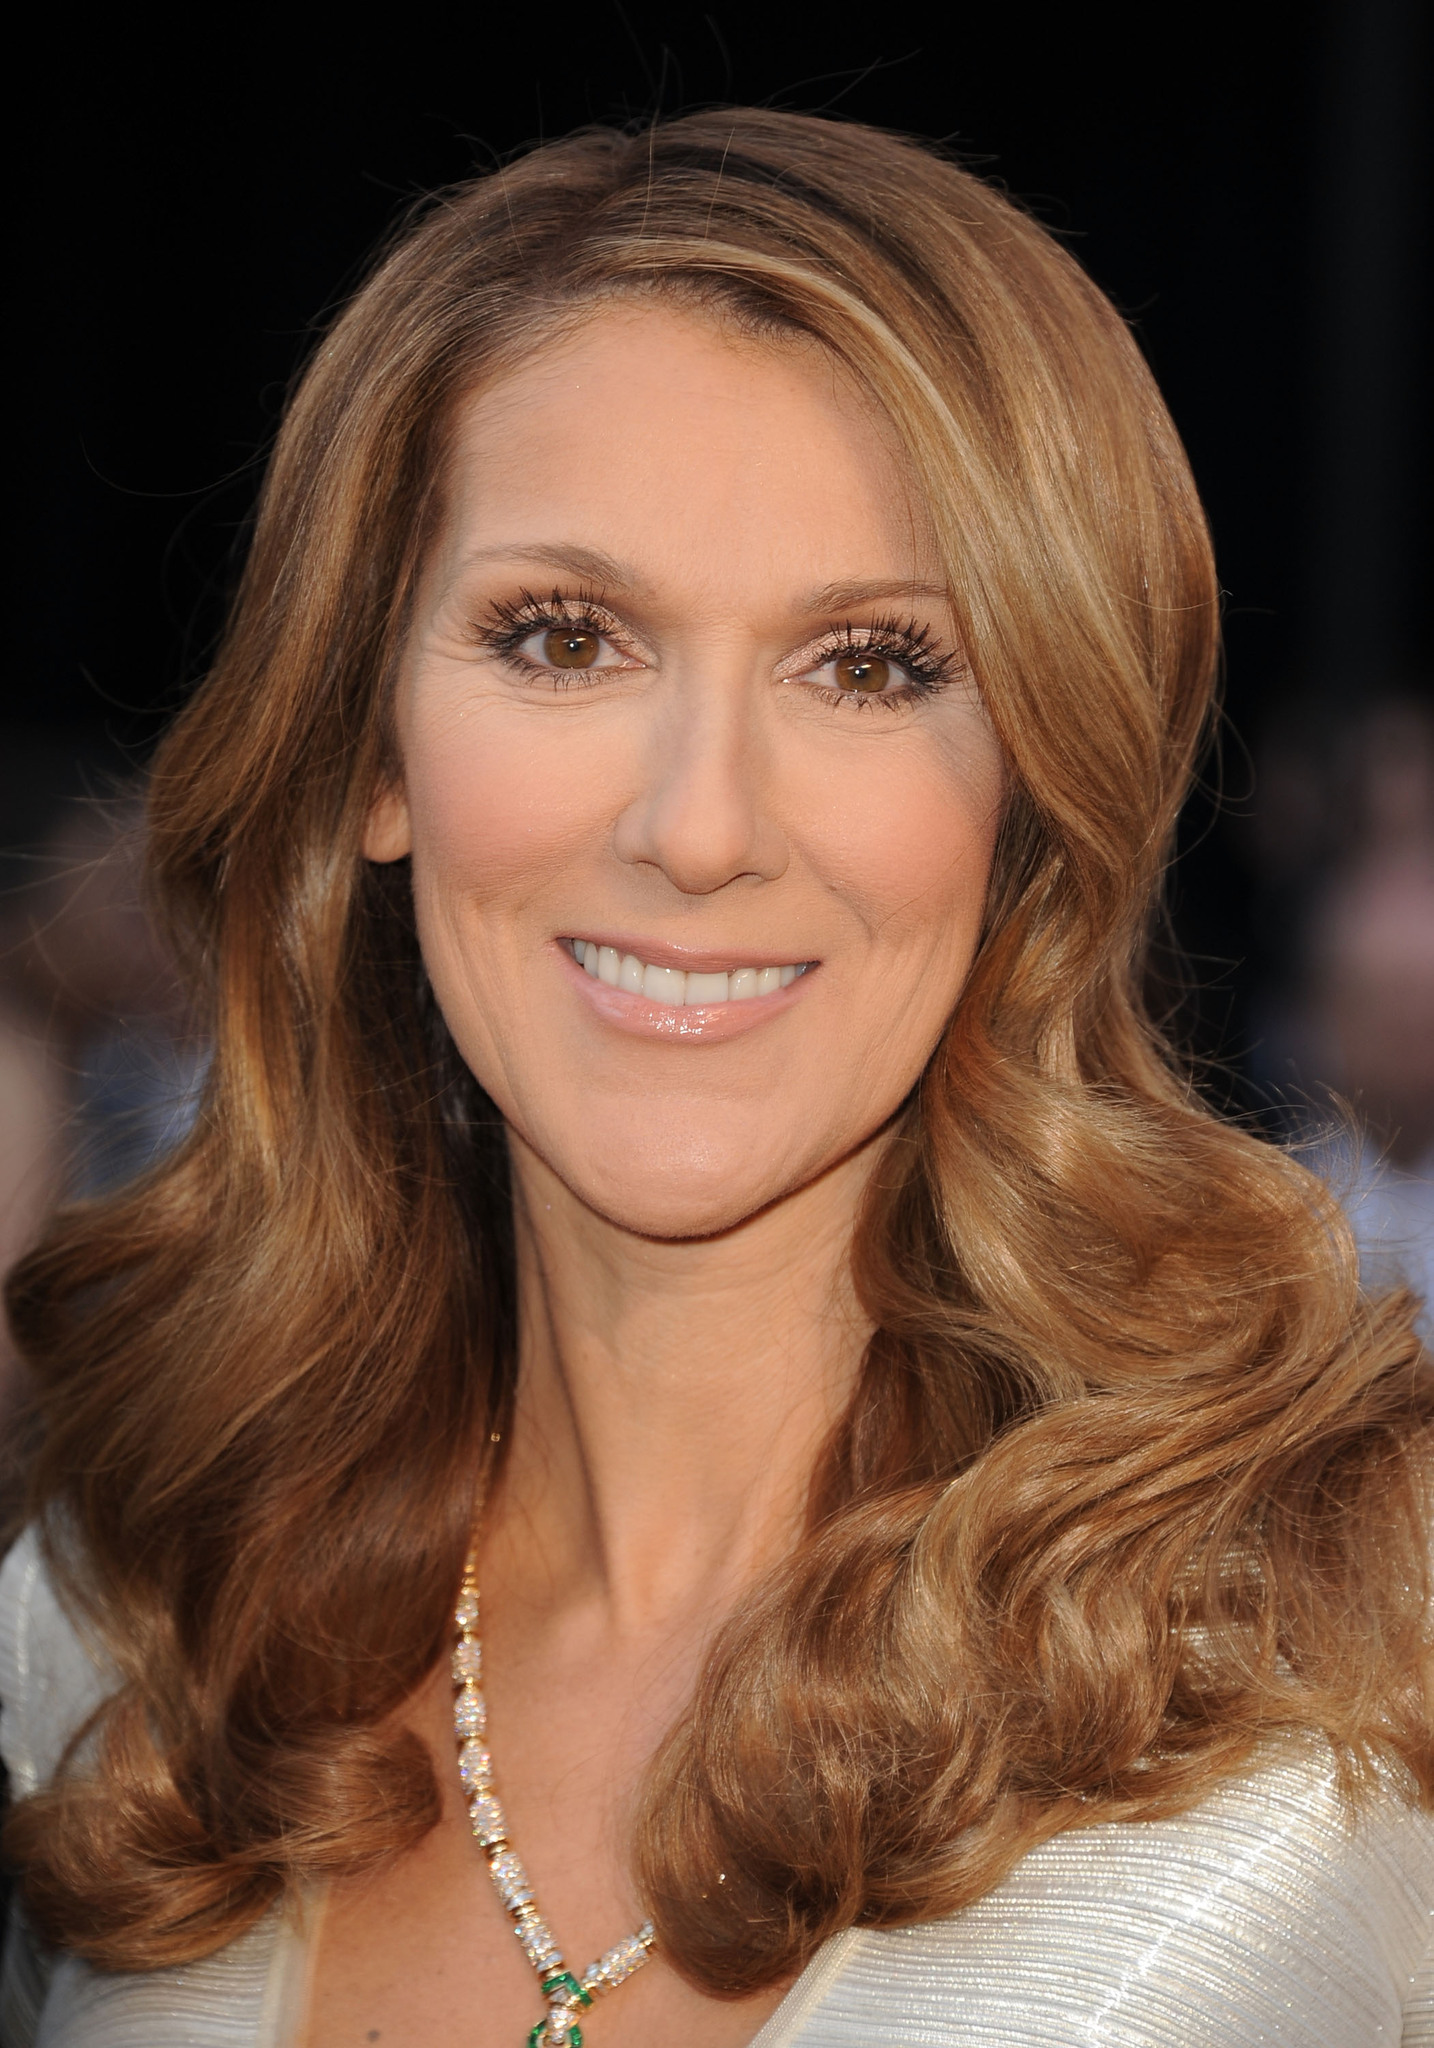 Images Celine Dion nudes (66 photos), Is a cute